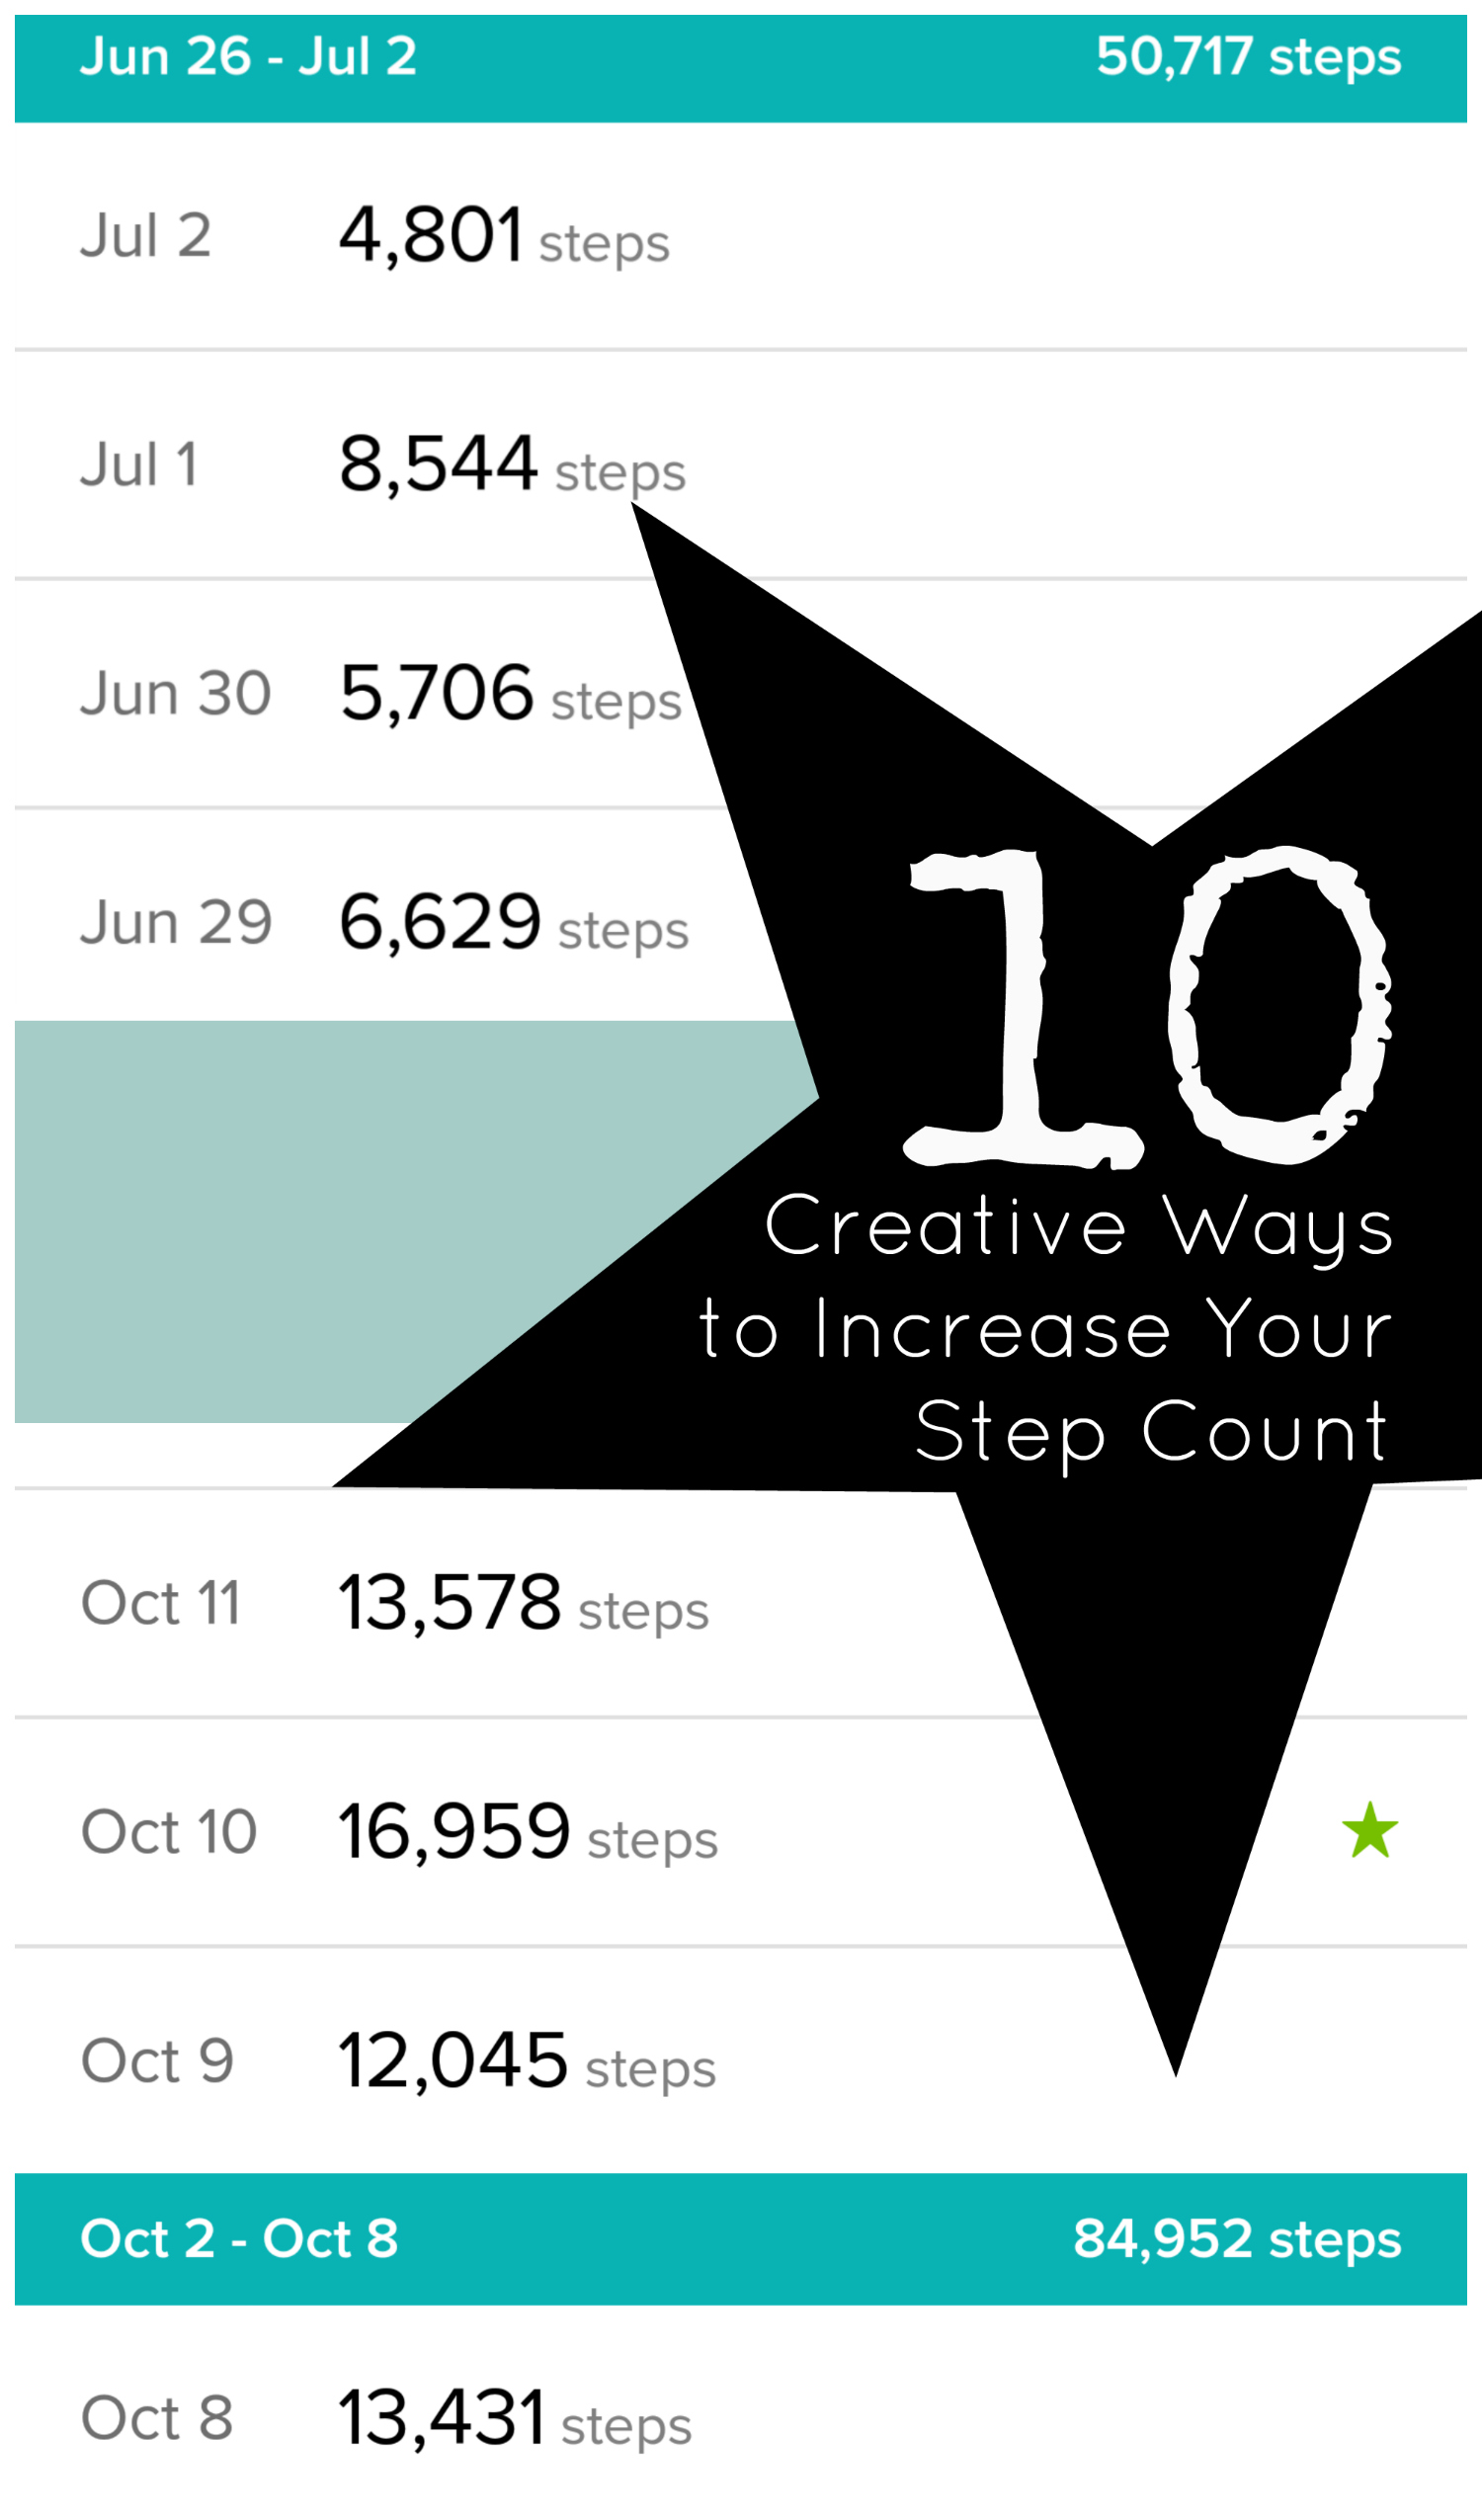 10 Creative Ways to Increase Your Daily Step Count